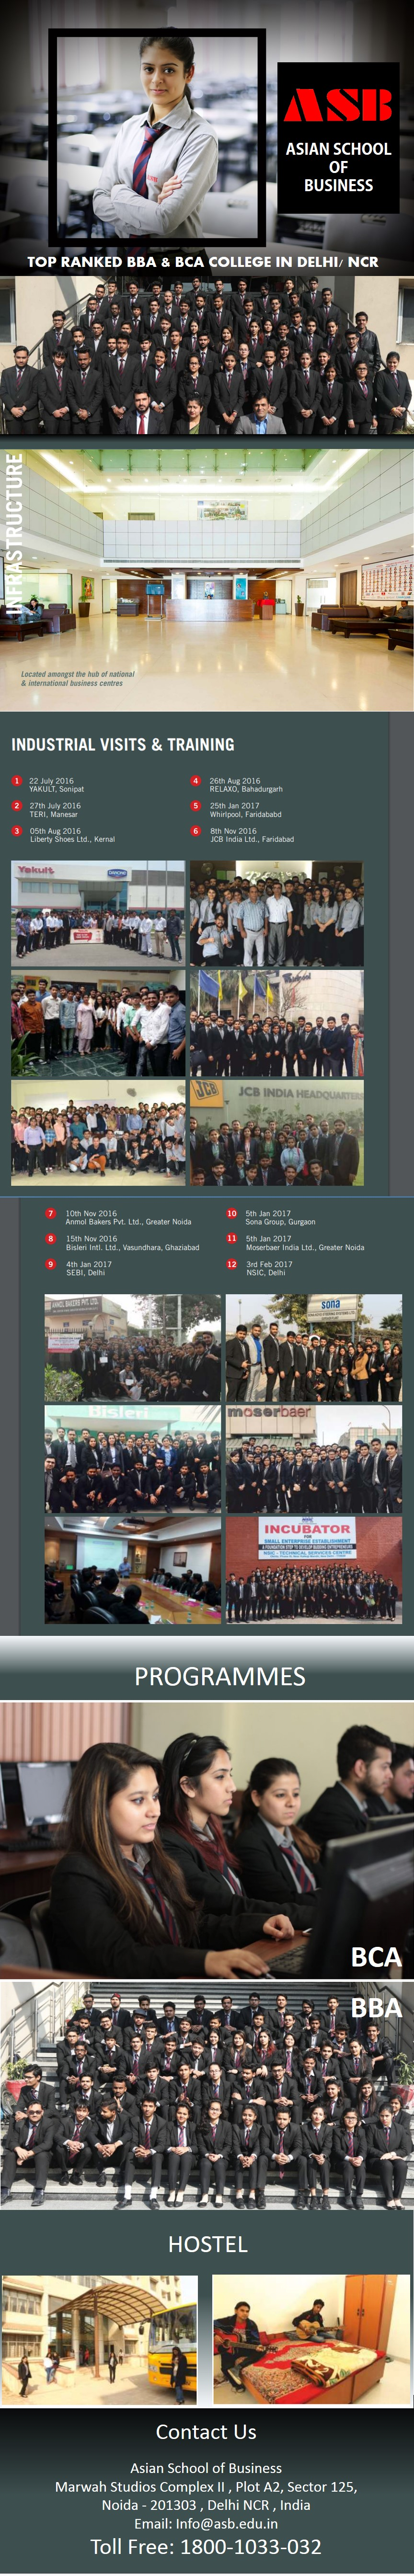 Asian School of Business has been delivering quality education amongst passionate learners for years. The institution offers BCA and BBA degree programs